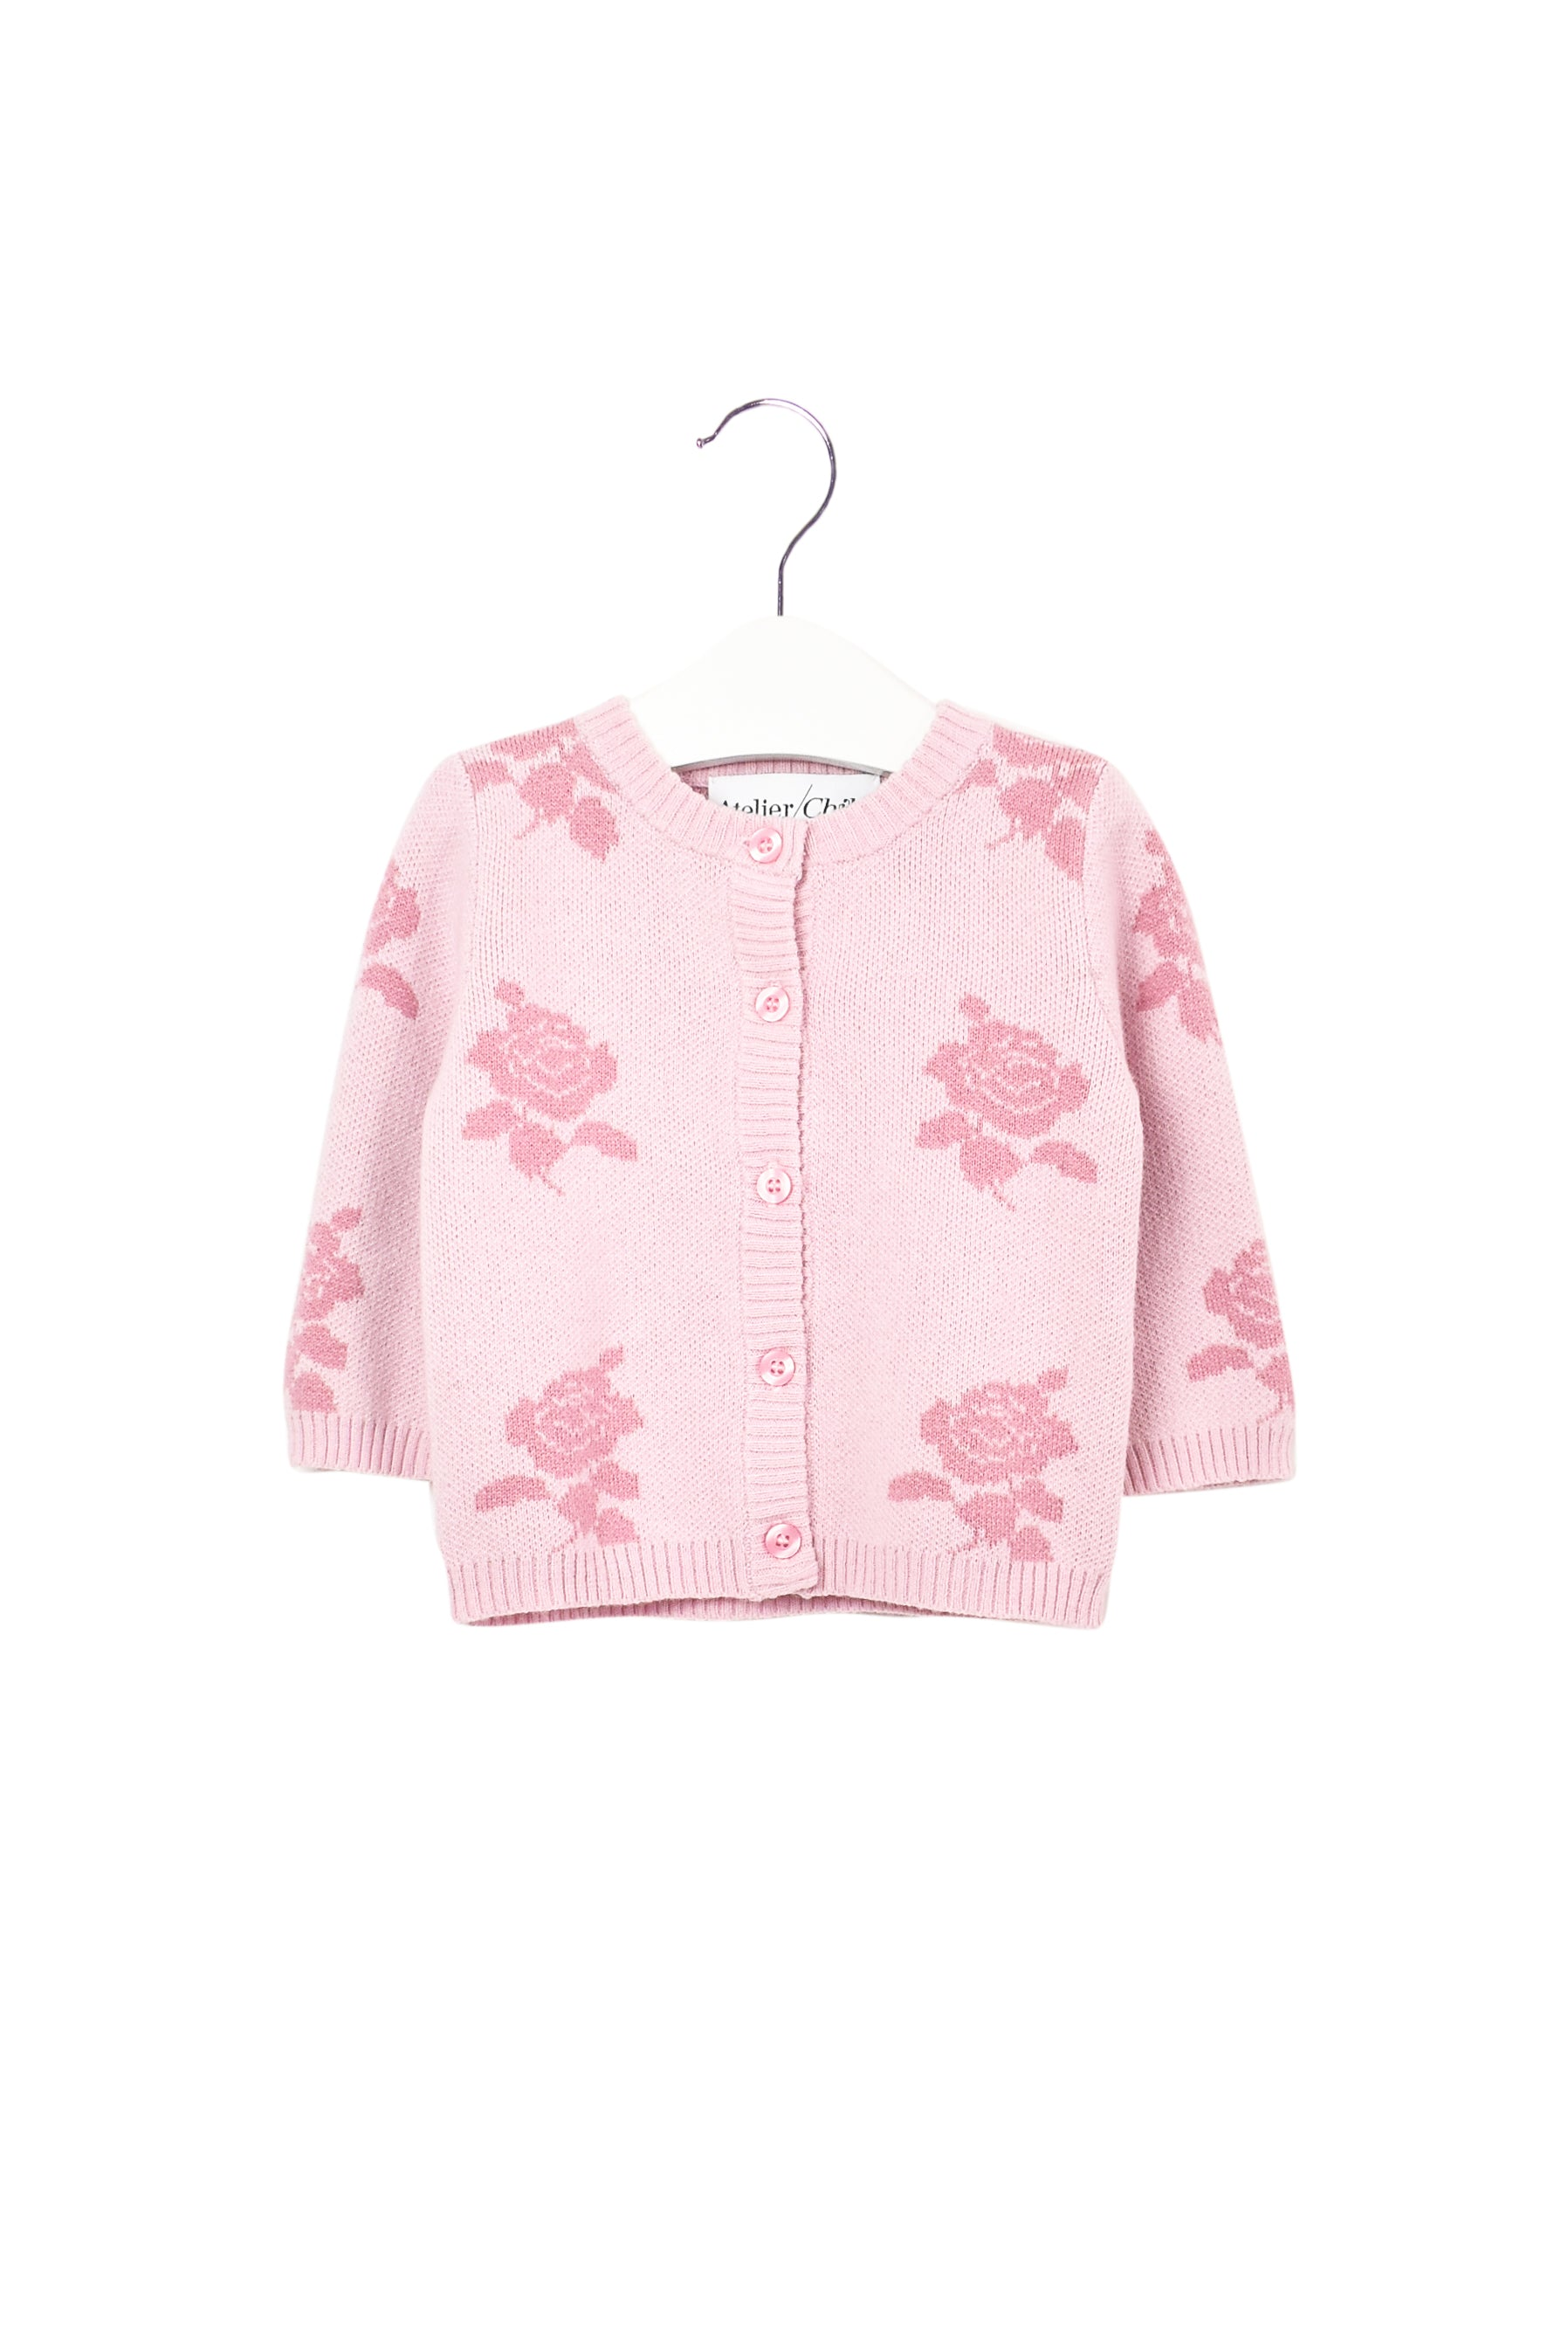 10007674 Atelier Child Baby~ Cardigan 12-18M at Retykle